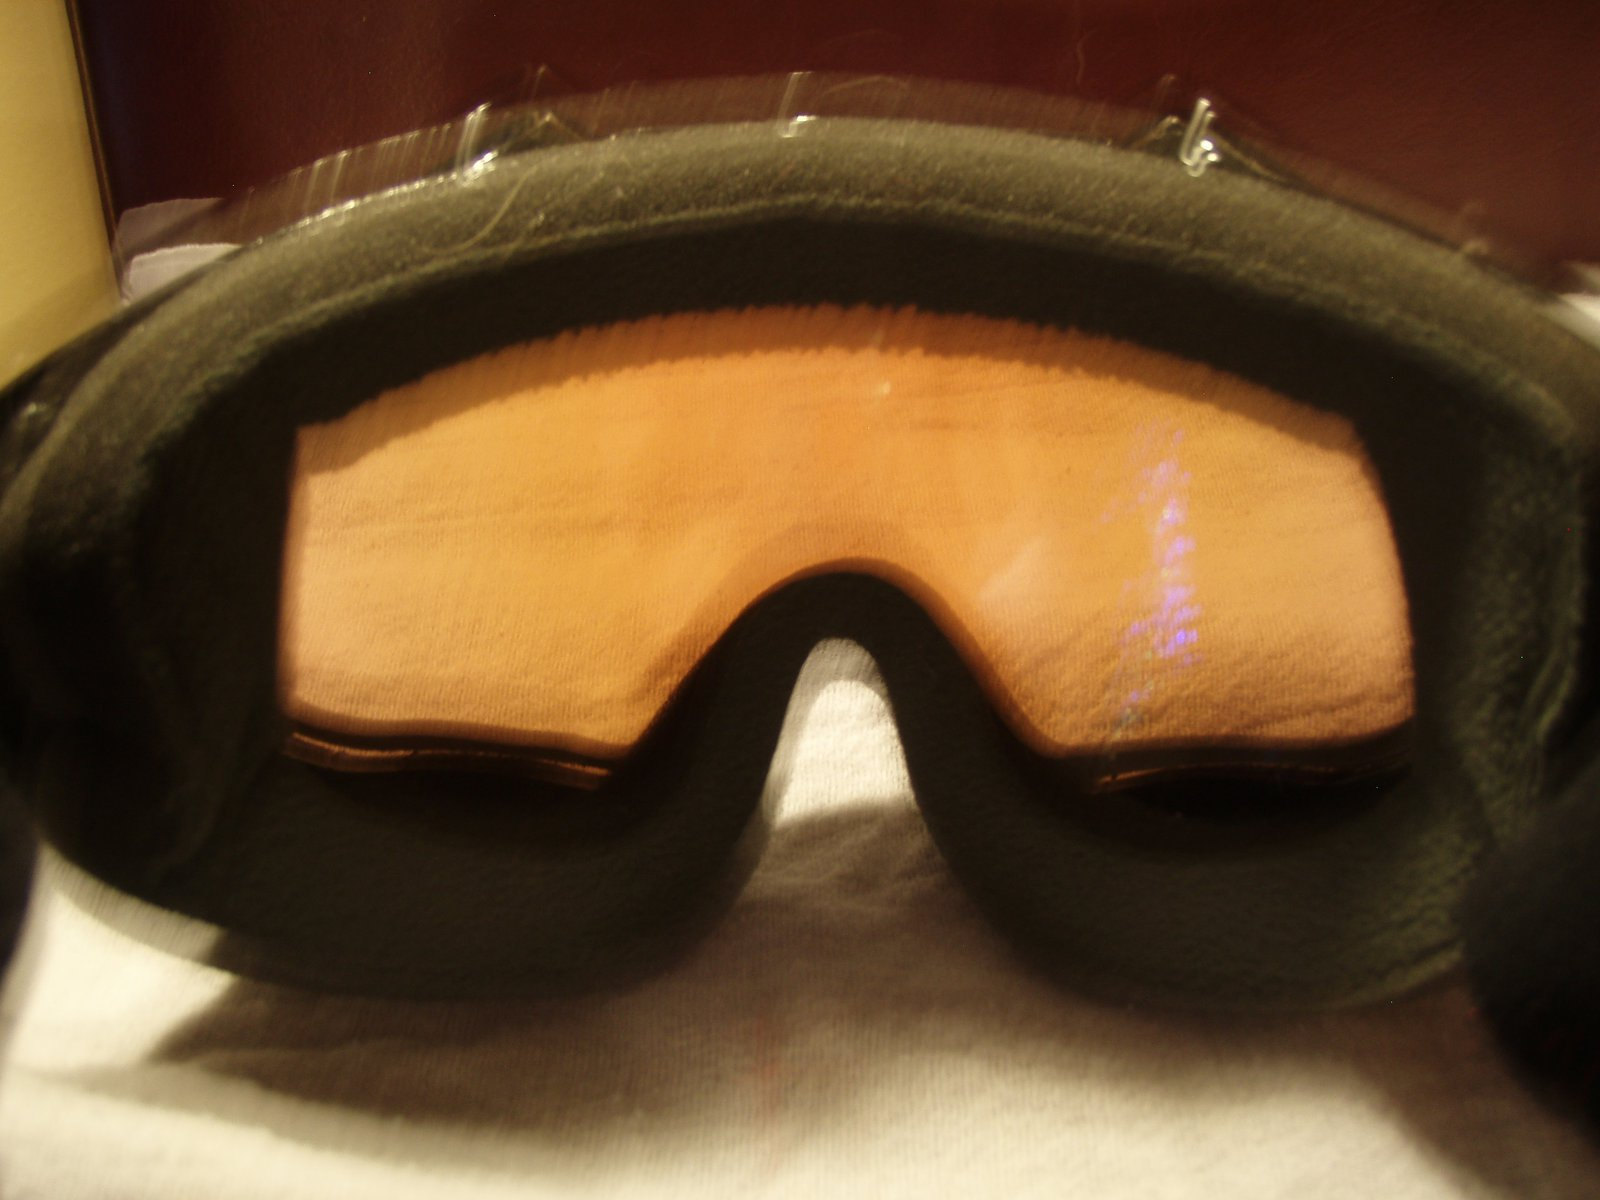 Sorry for the blurry pic- inside of the goggles